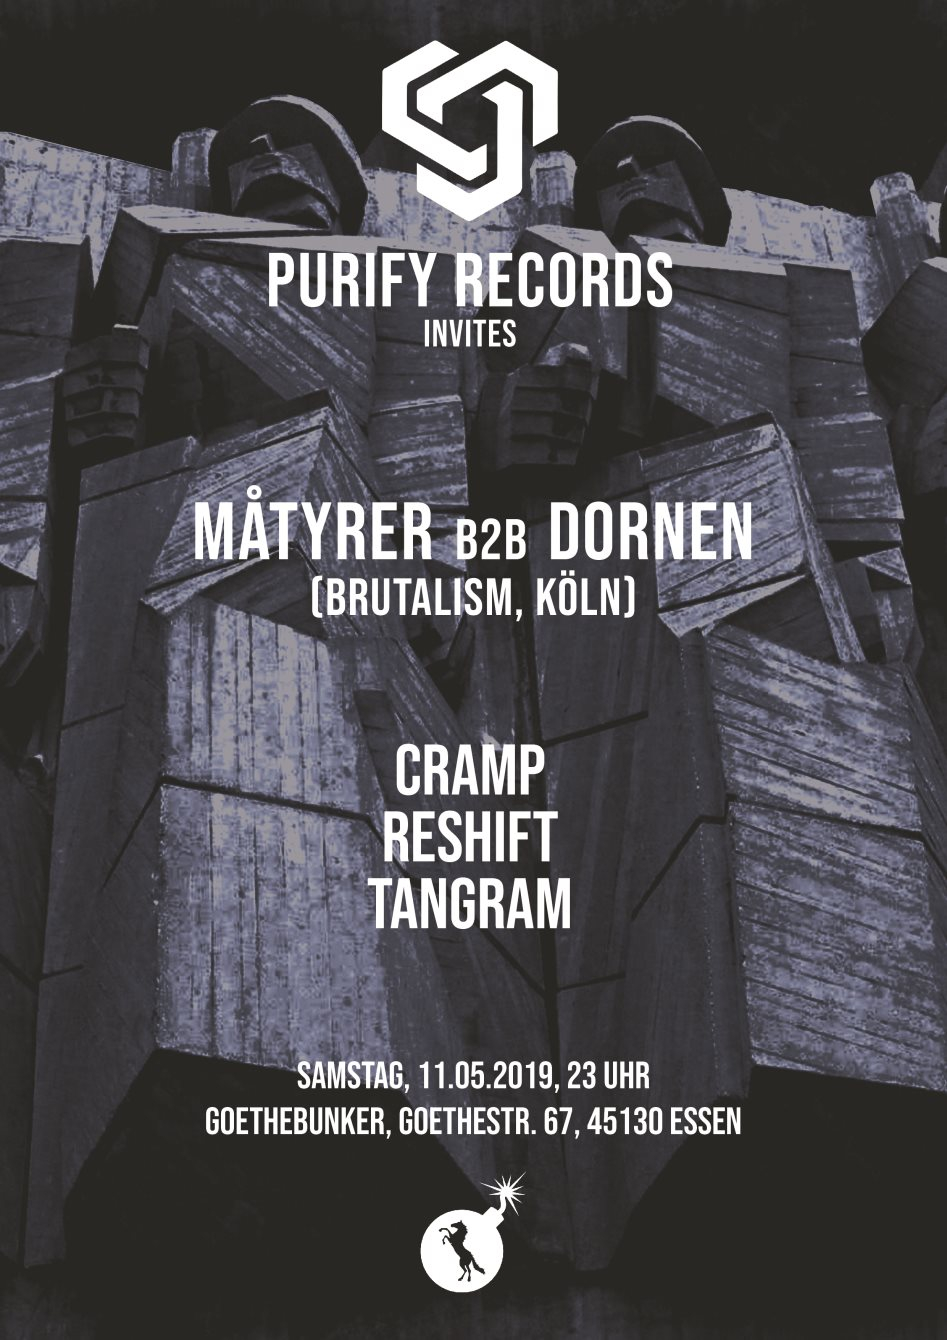 Purify Records Invites Brutalism - Flyer front